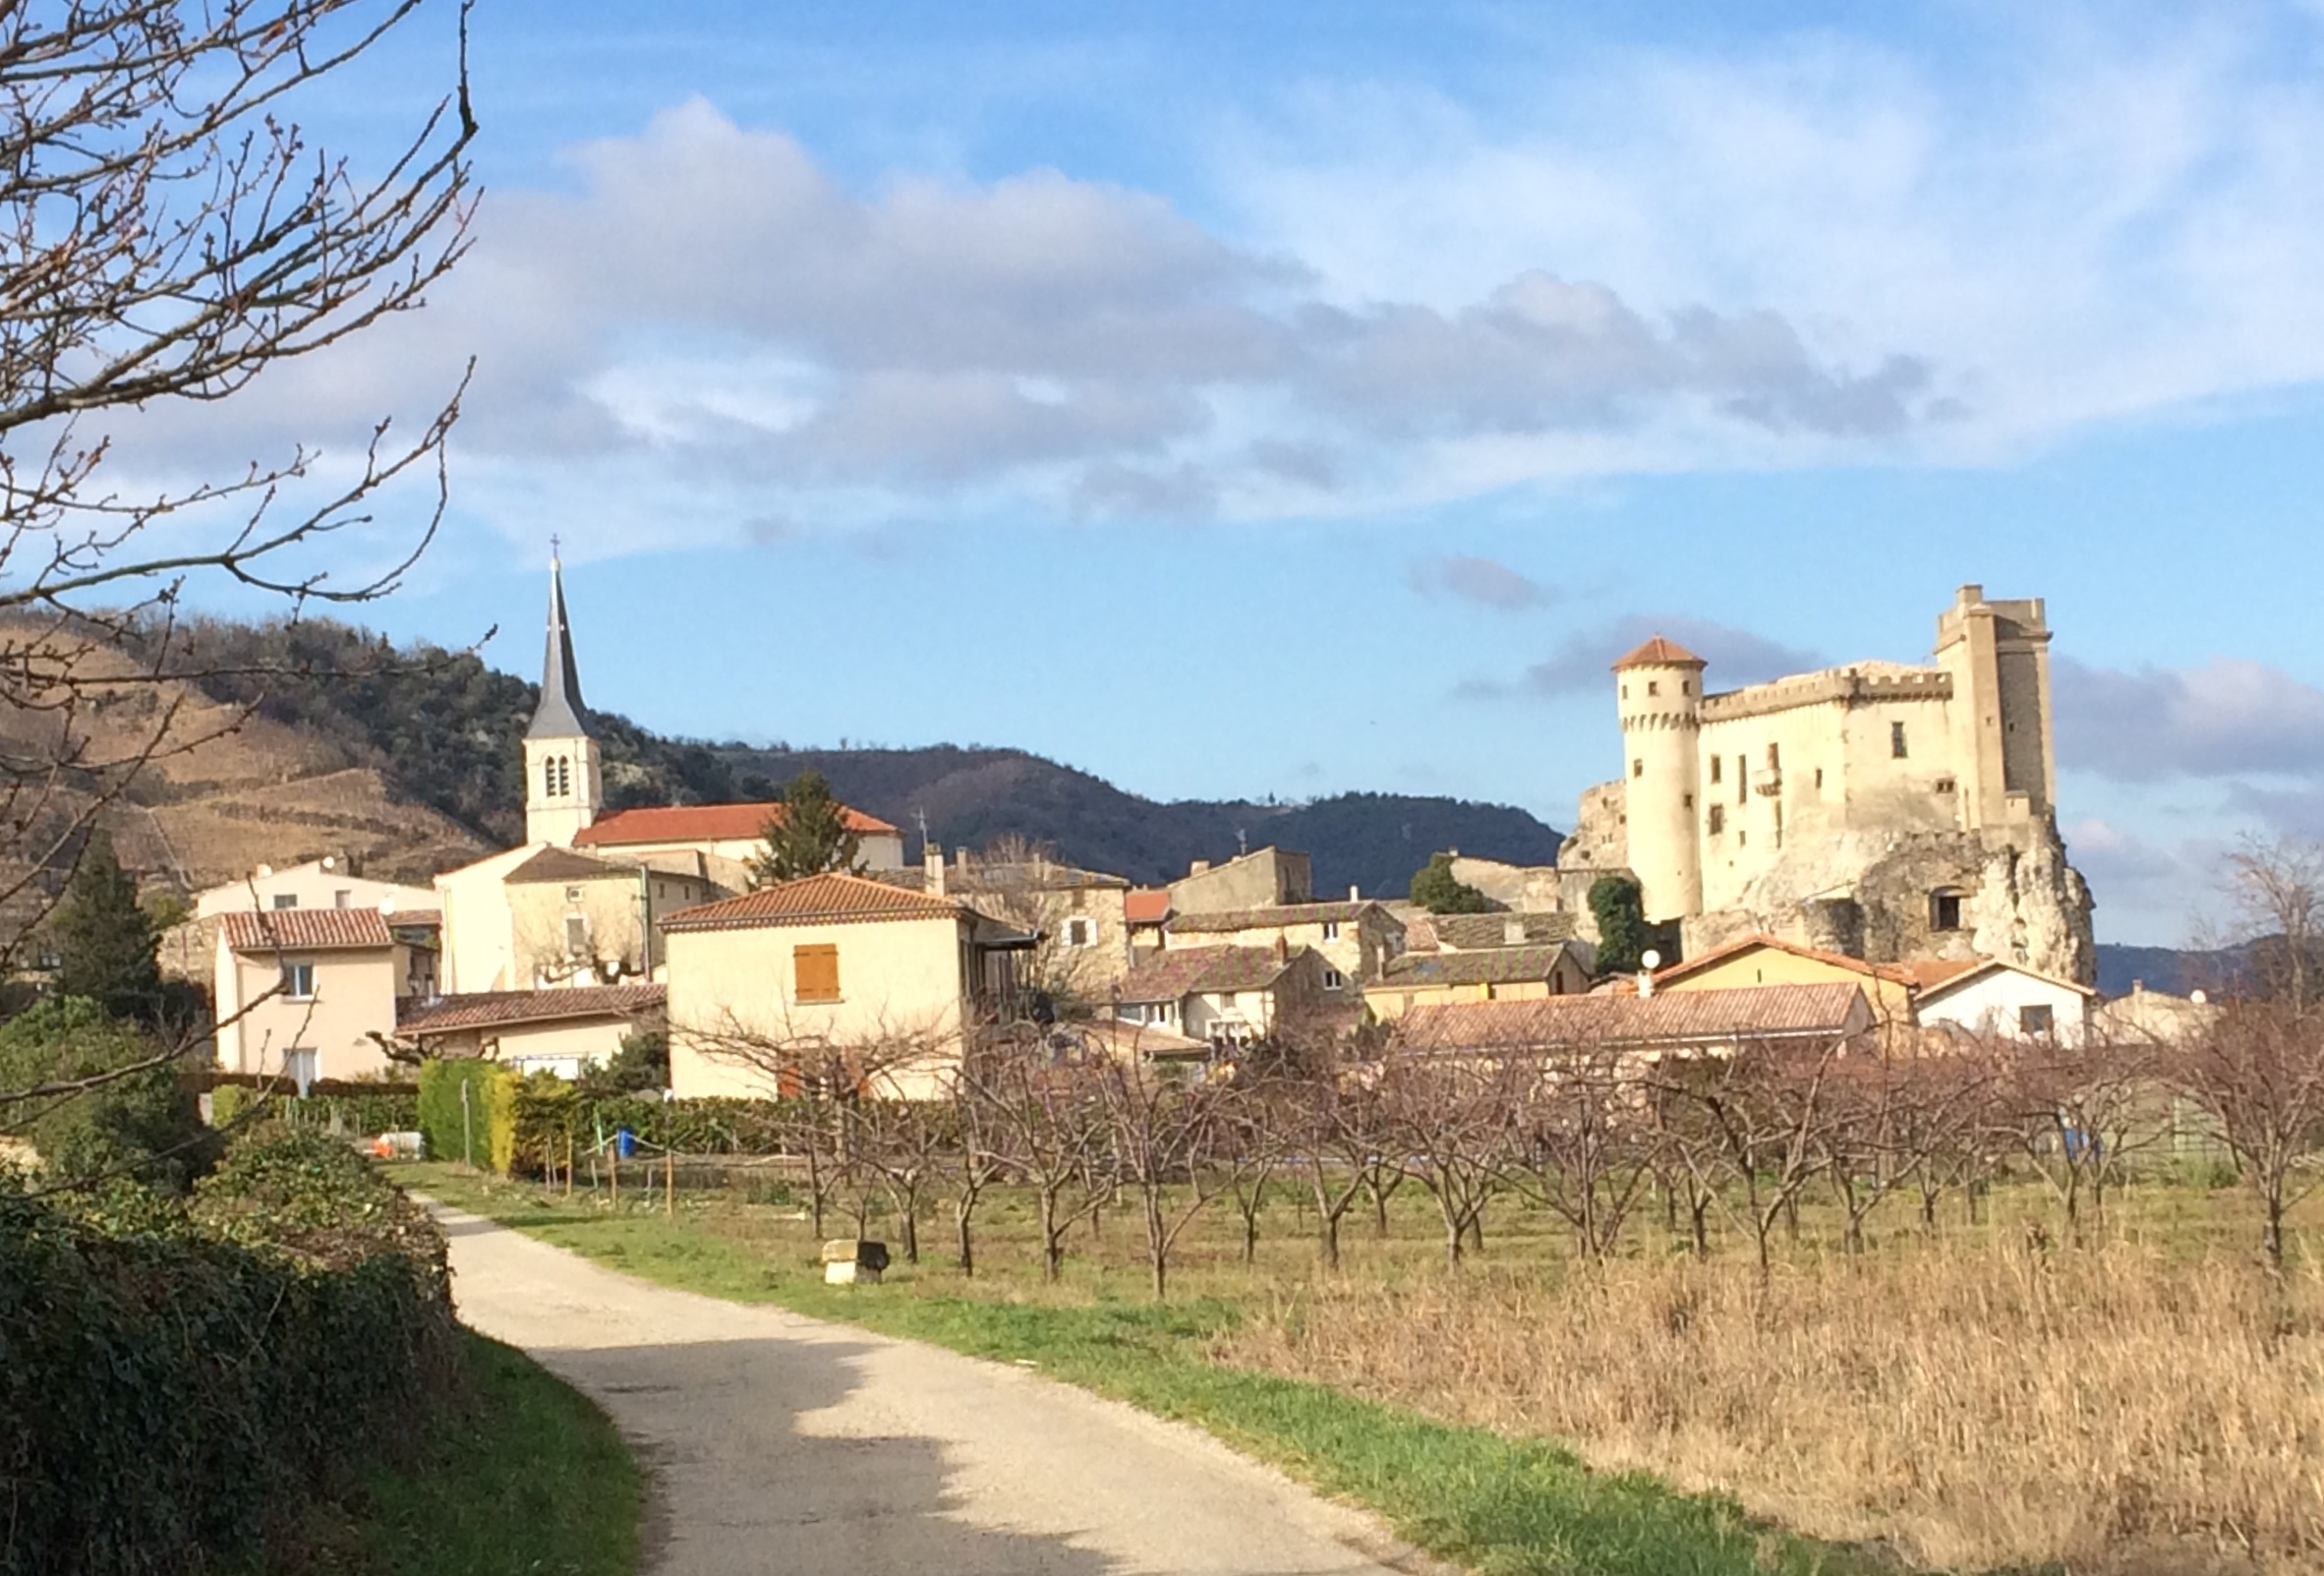 2020-01-19 Chateaubourg (1)